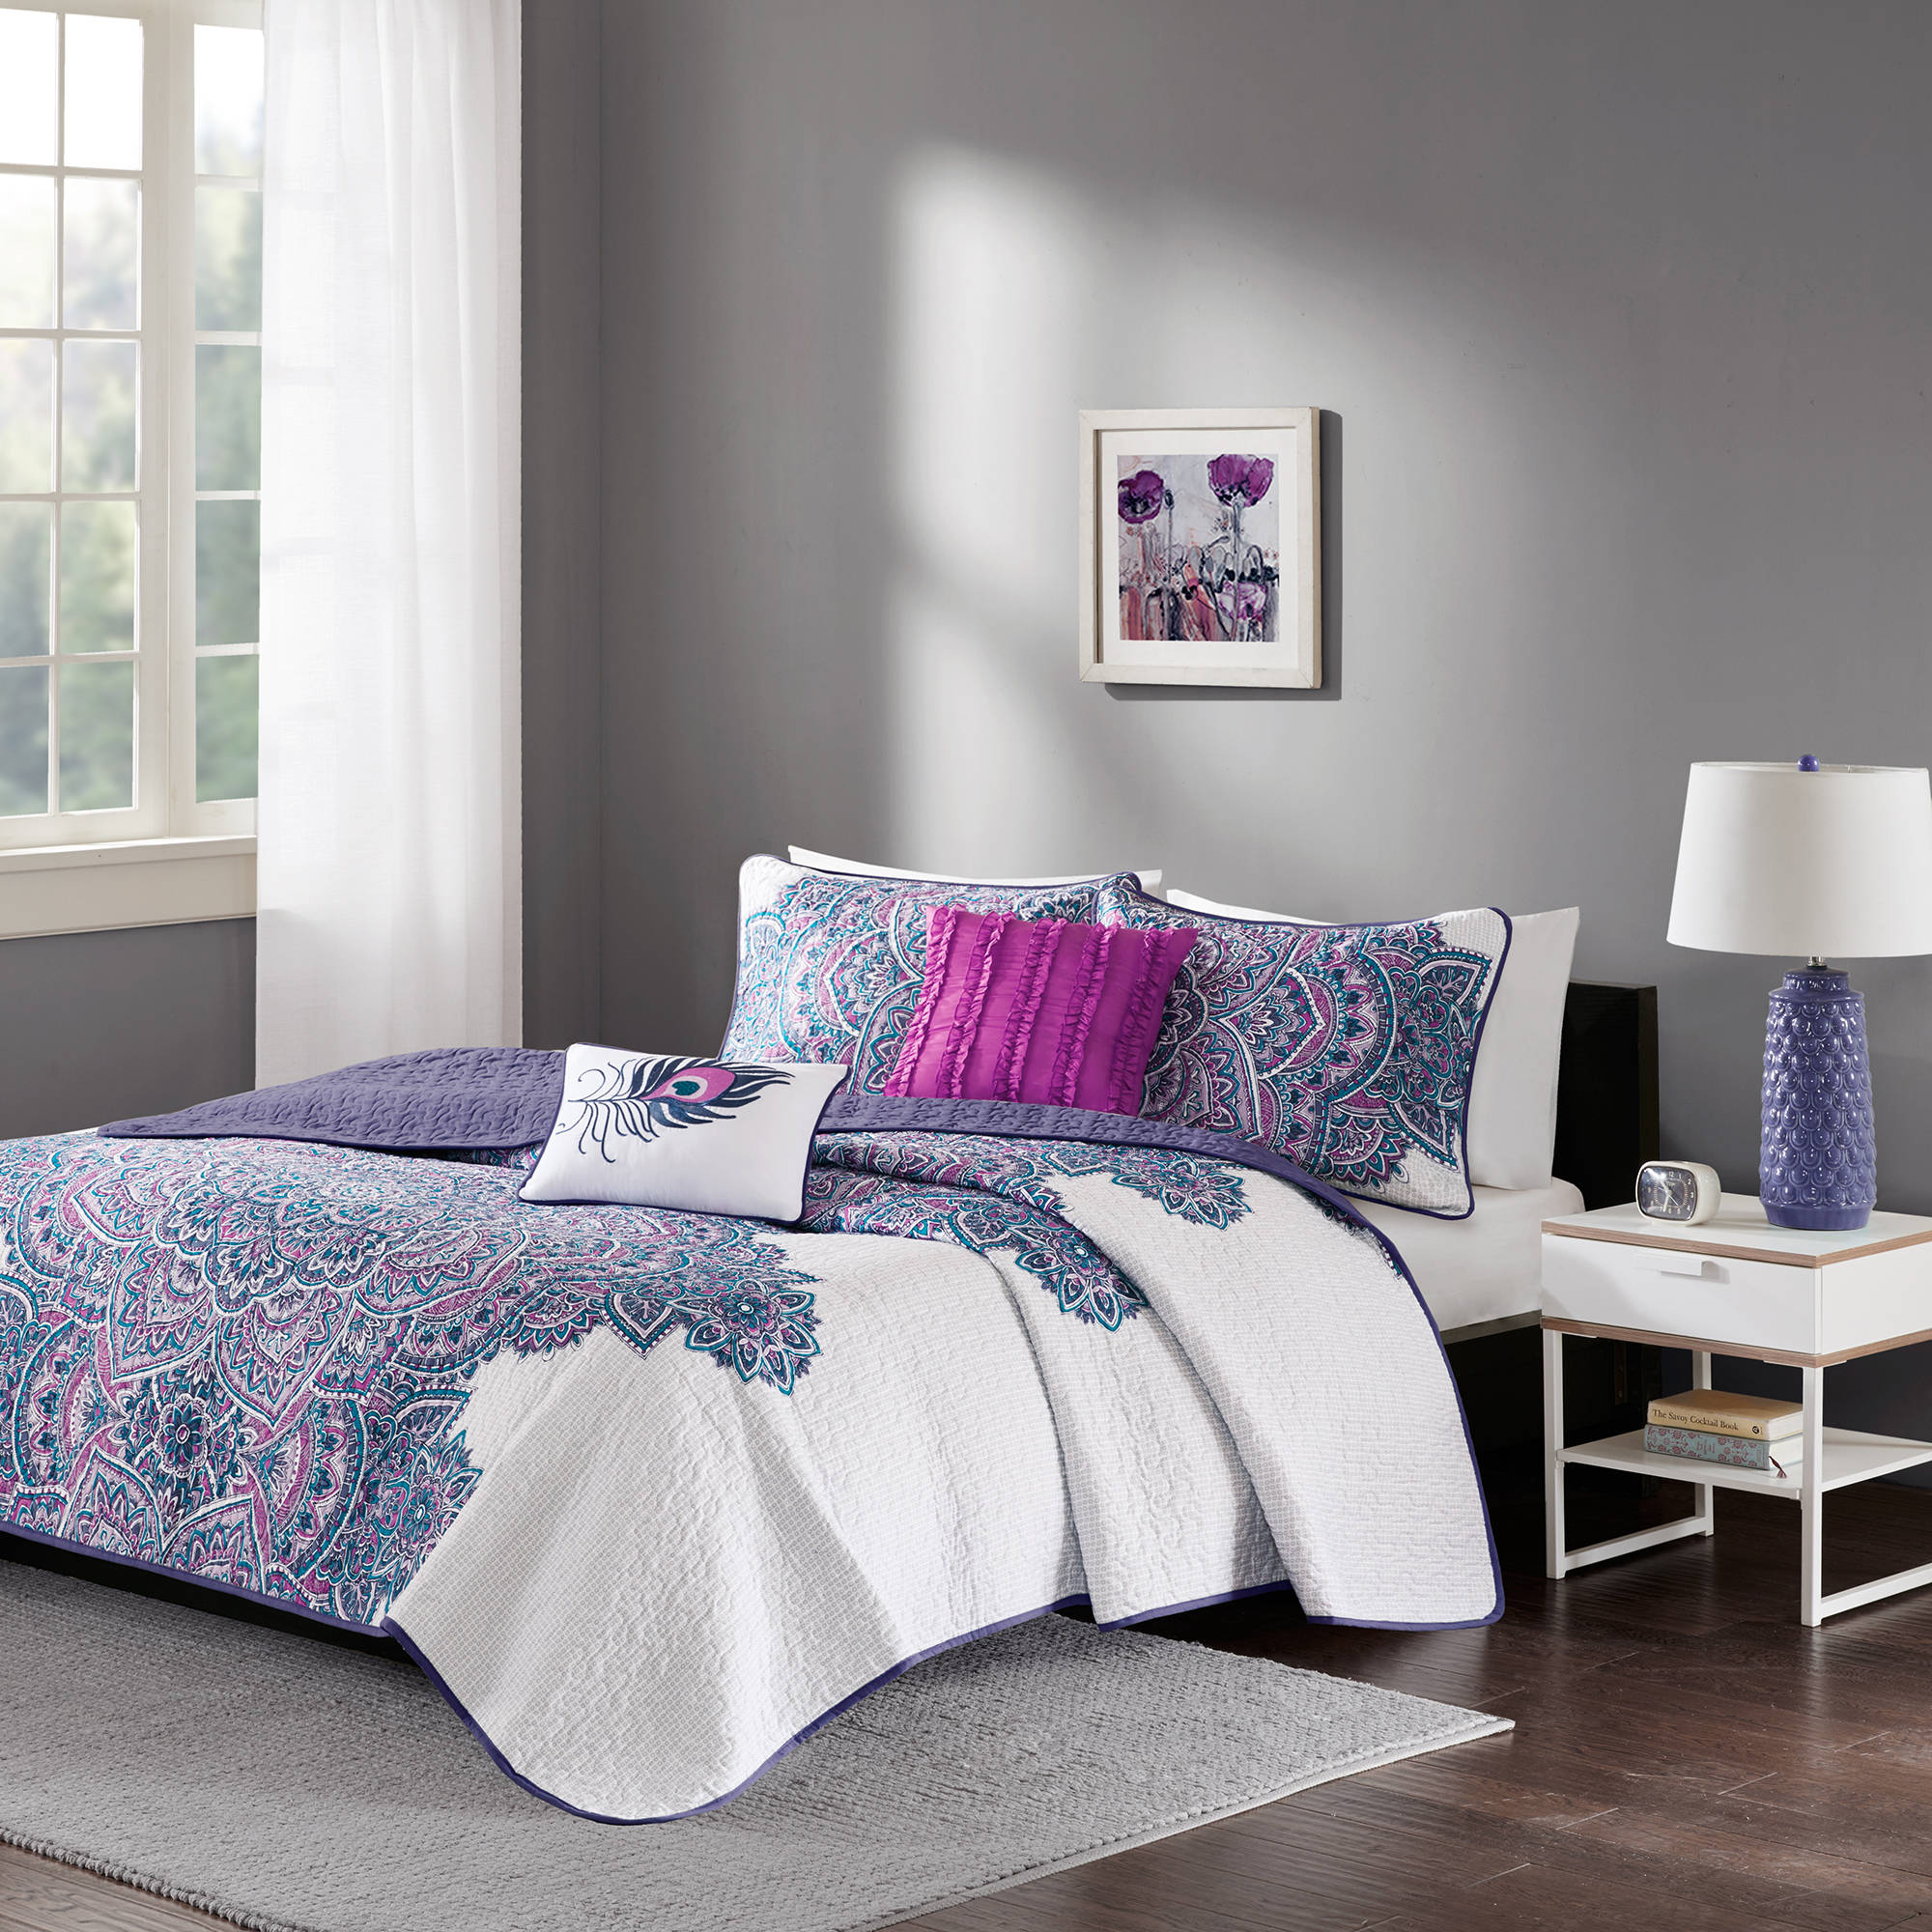 Click here to buy Home Essence Apartment Lolita Bedding Coverlet Set.